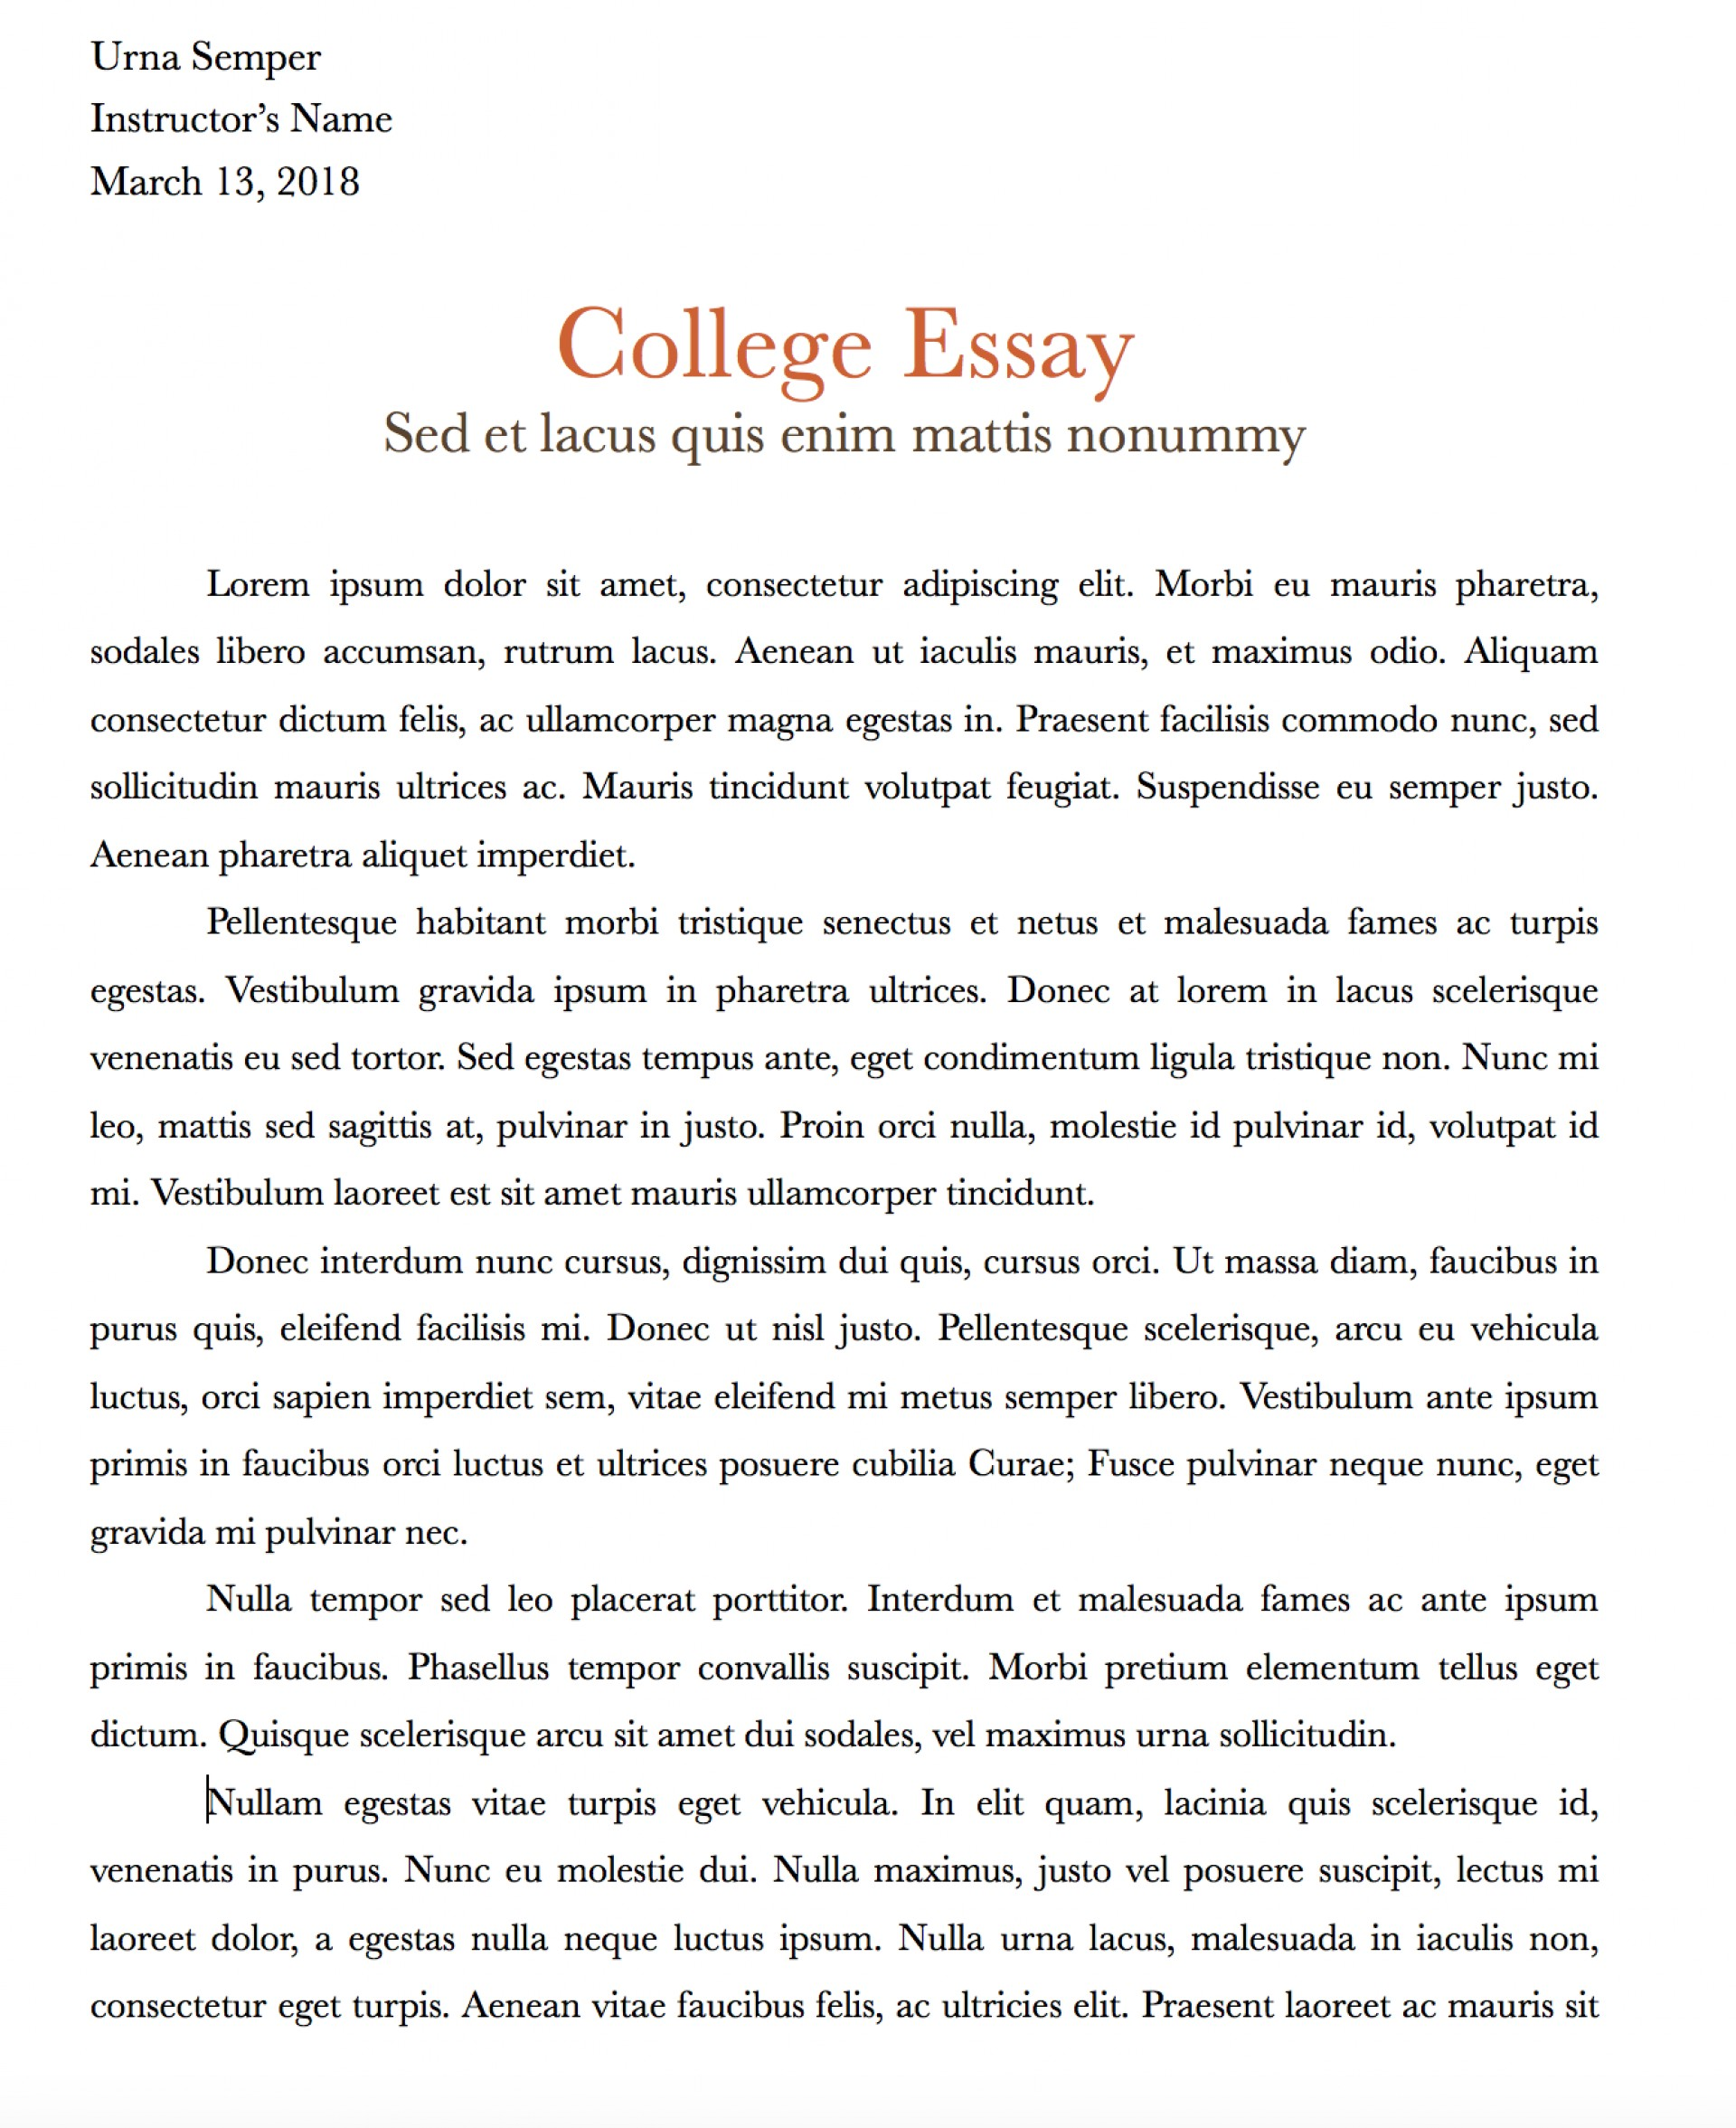 001 What Makes You Unique Essay Example How To Write An Interesting And Captivating College Application Ctwrvkoshcimzkxyhyl8 With Parag Sensational Question Colorful 1920